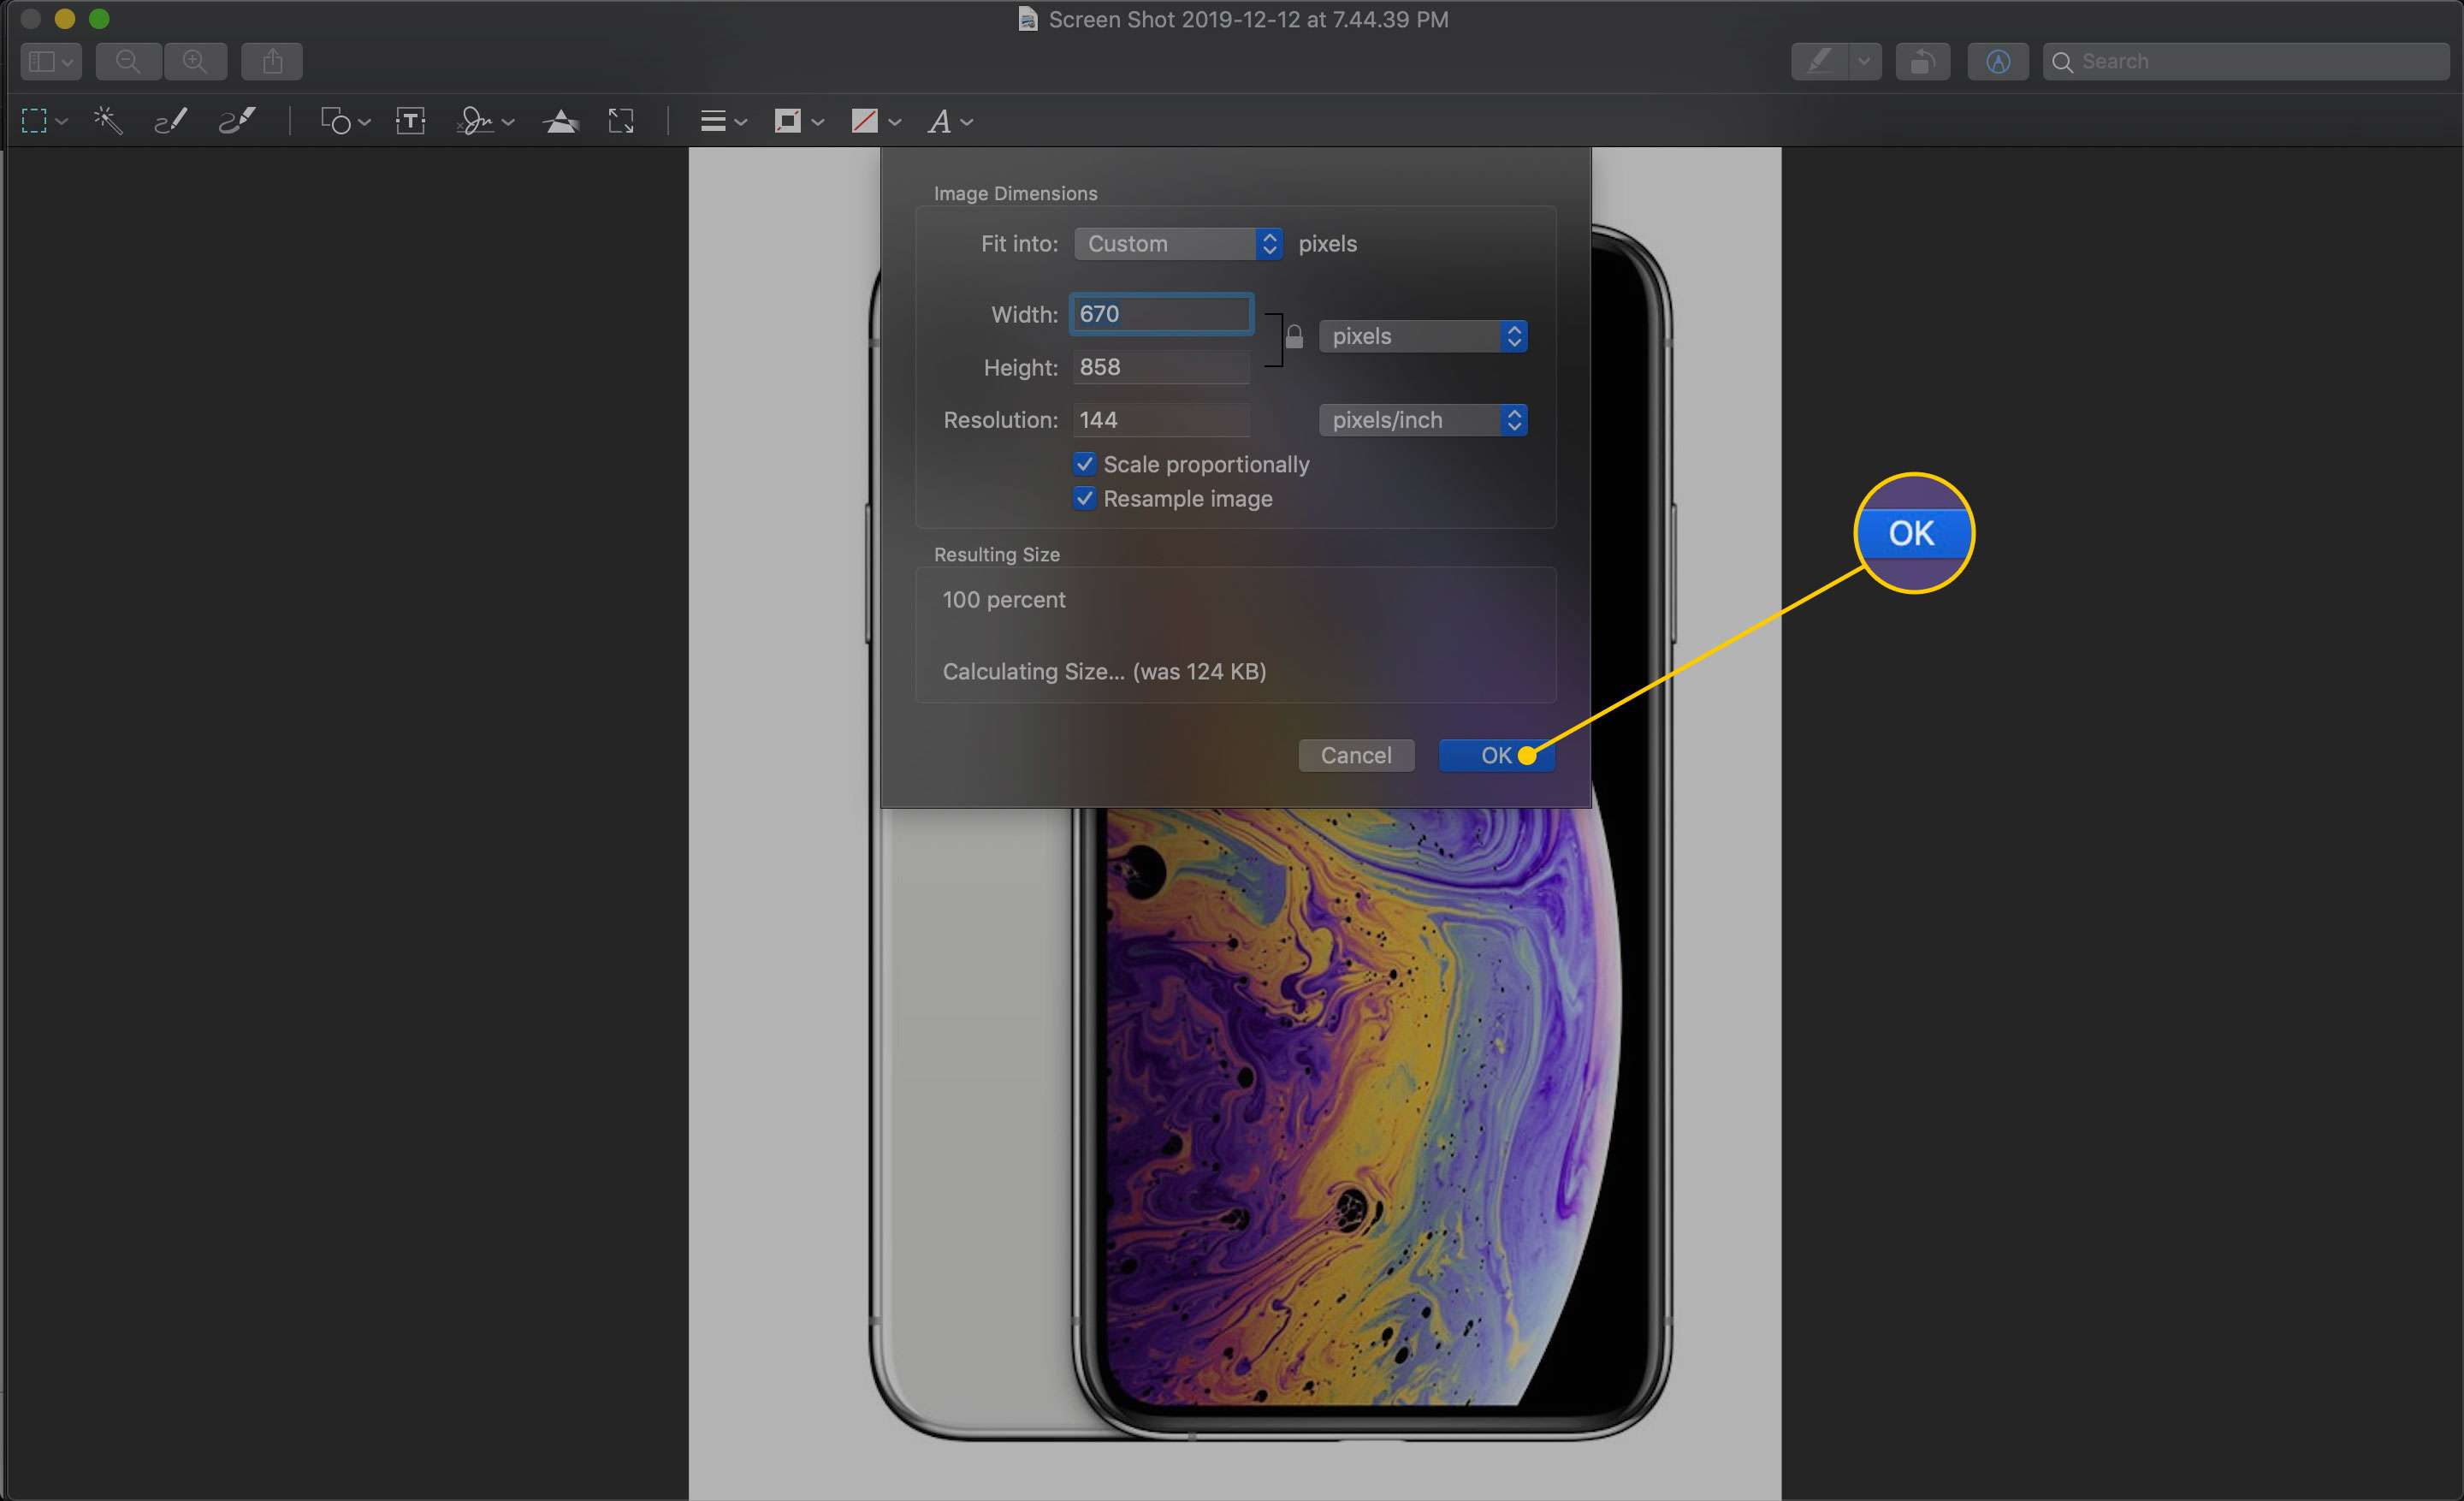 Image Dimensions screen in Preview with the OK button highlighted